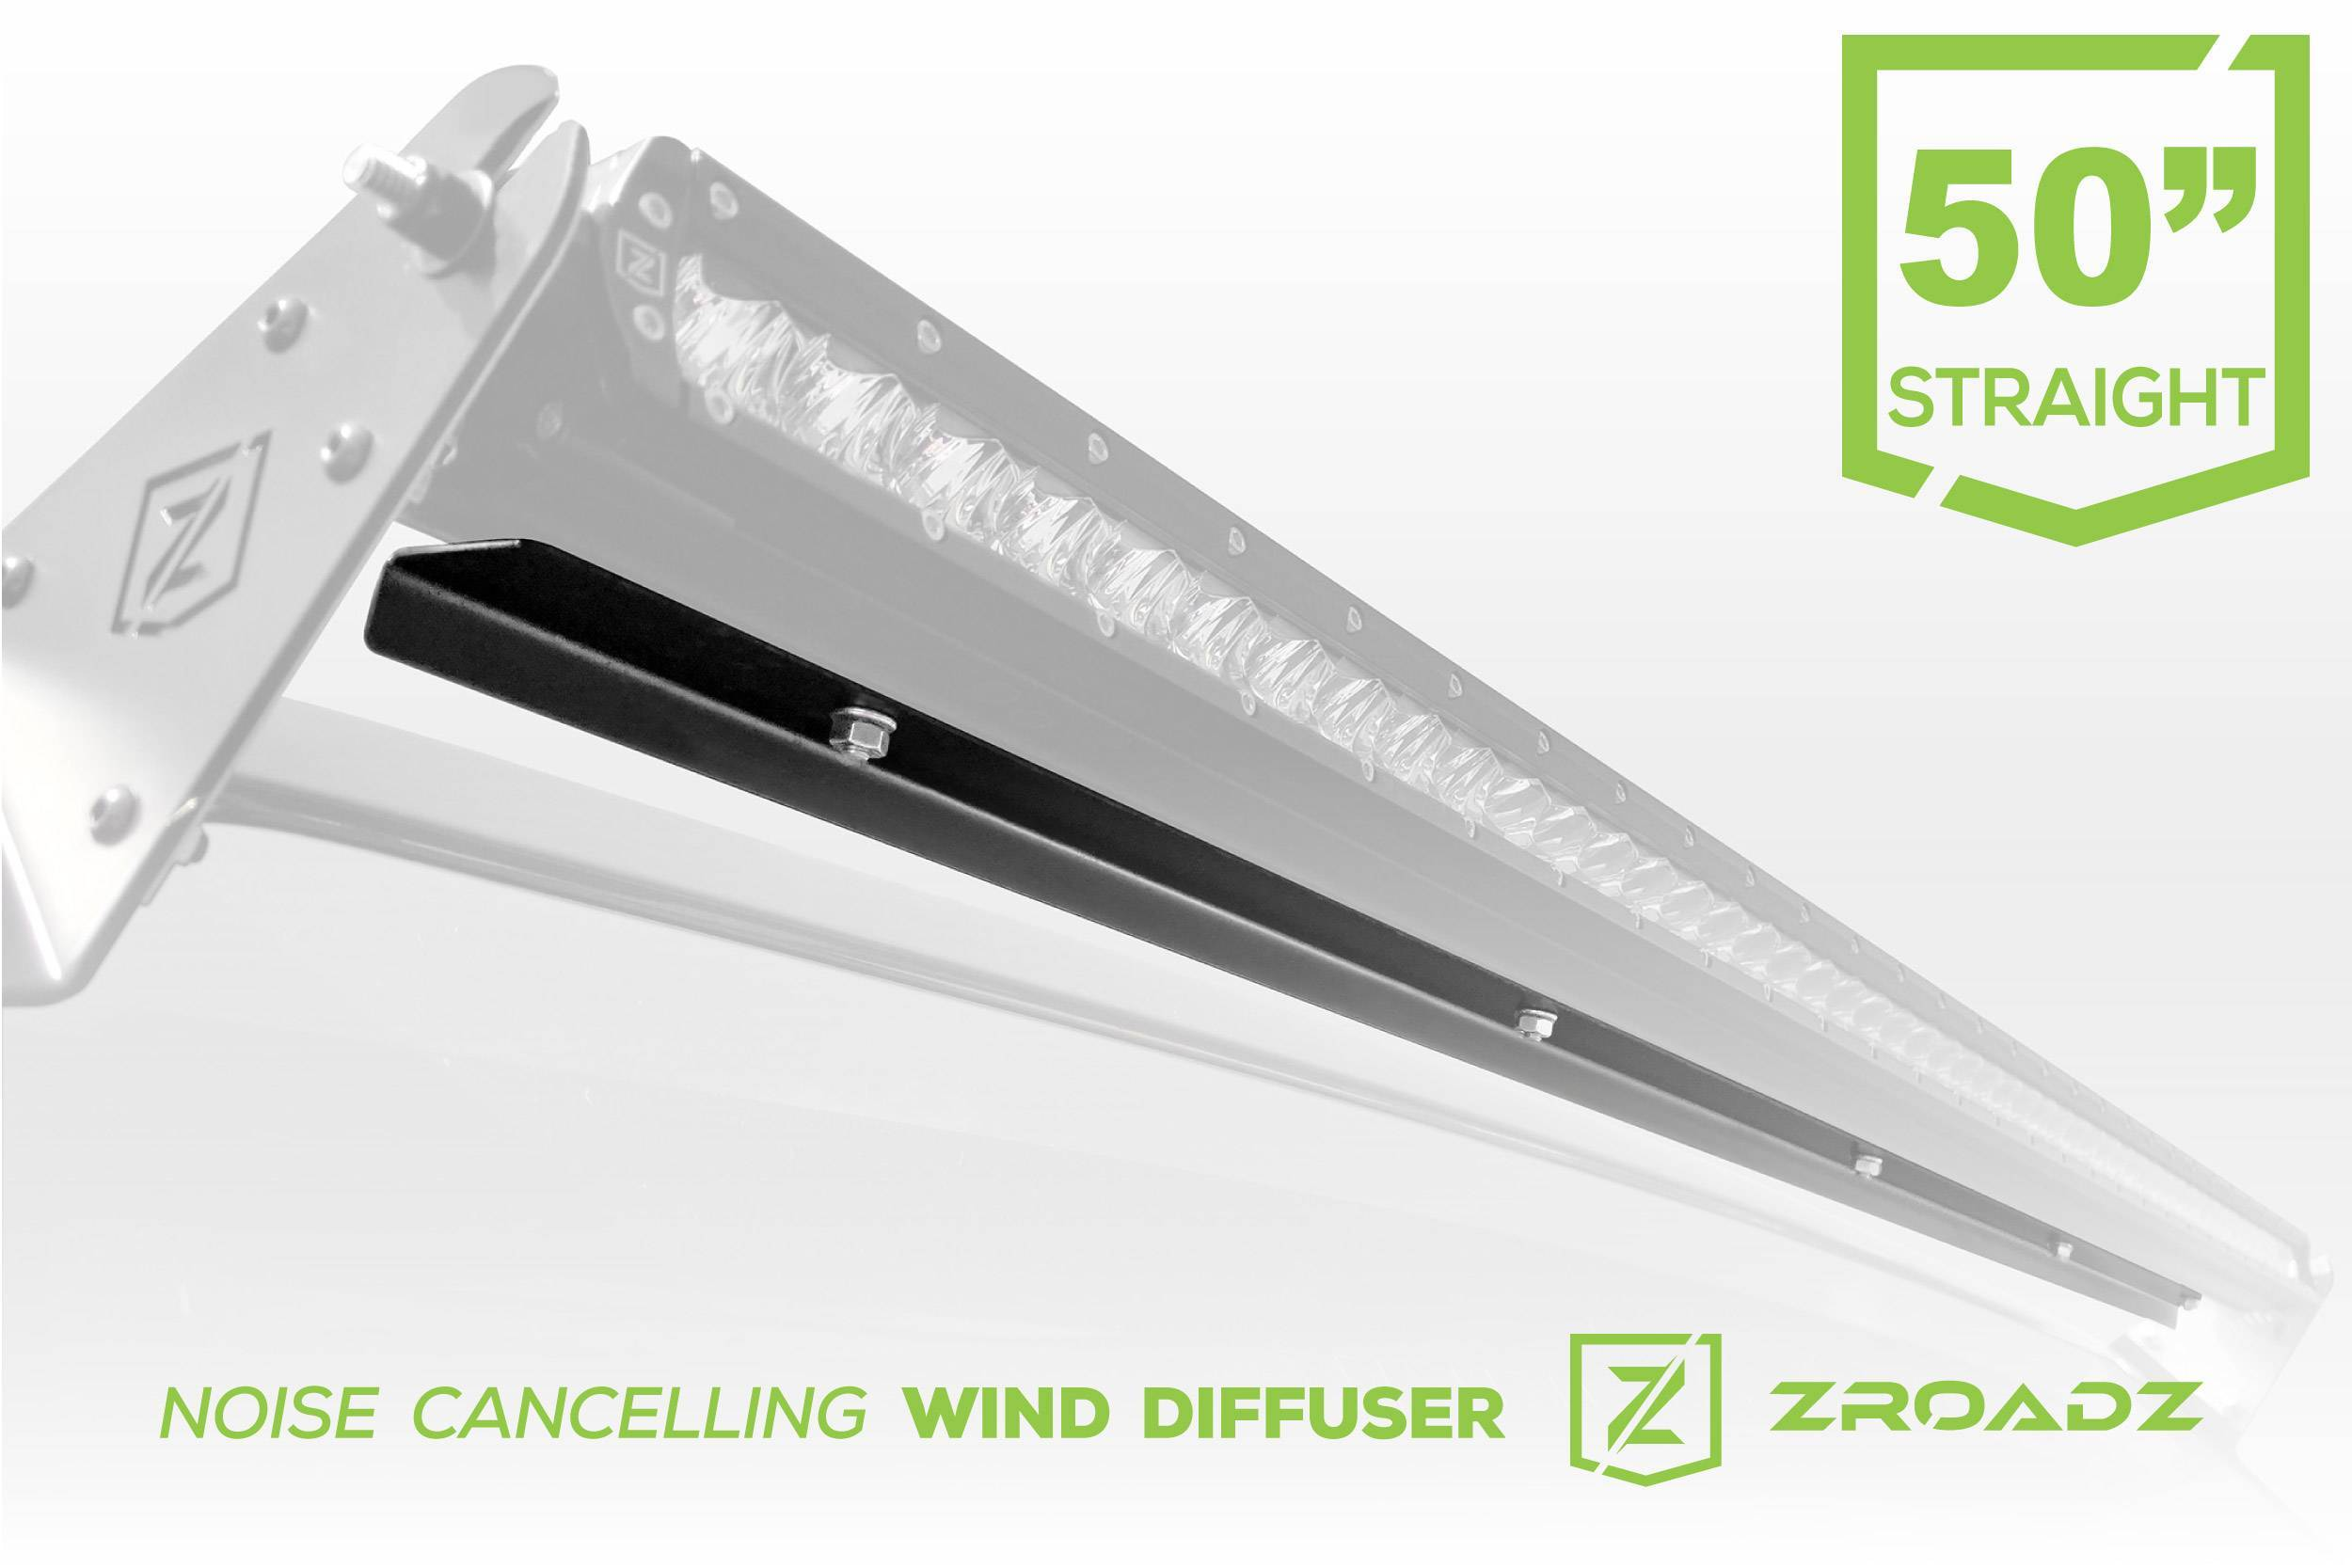 ZROADZ - Noise Cancelling Wind Diffuser for (1) 50 Inch Straight Single Row LED Light Bar - PN #Z330051S